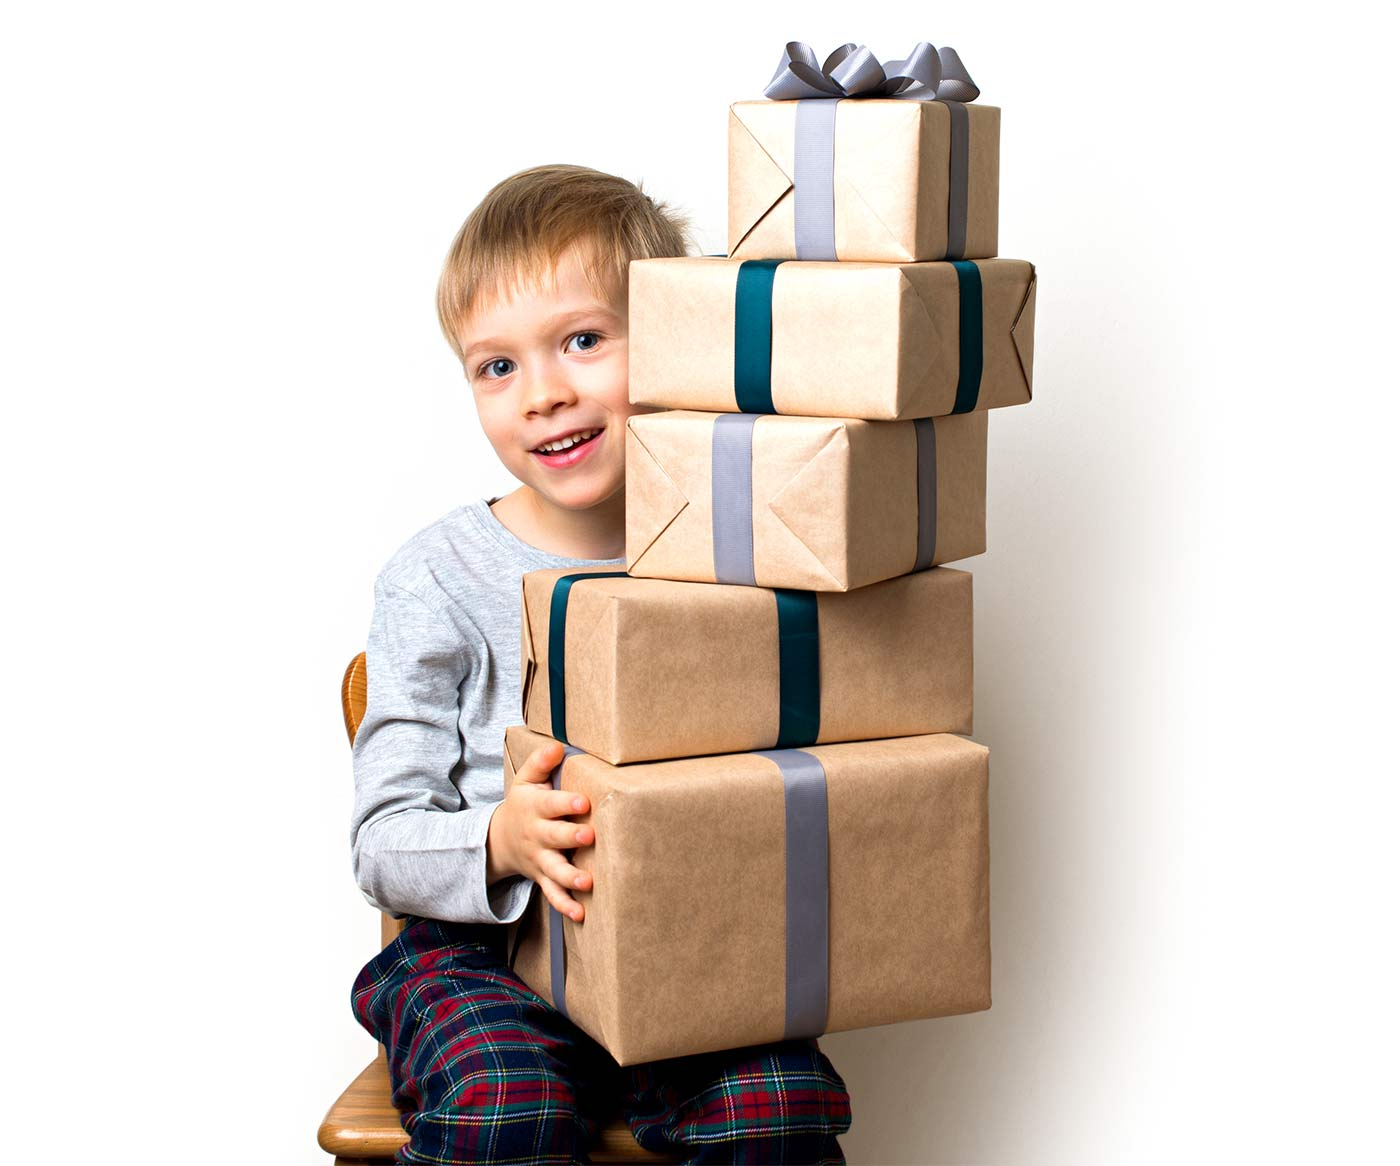 Grandparents spoiling grandchildren, a boy sitting on a chair with a pile of gifts